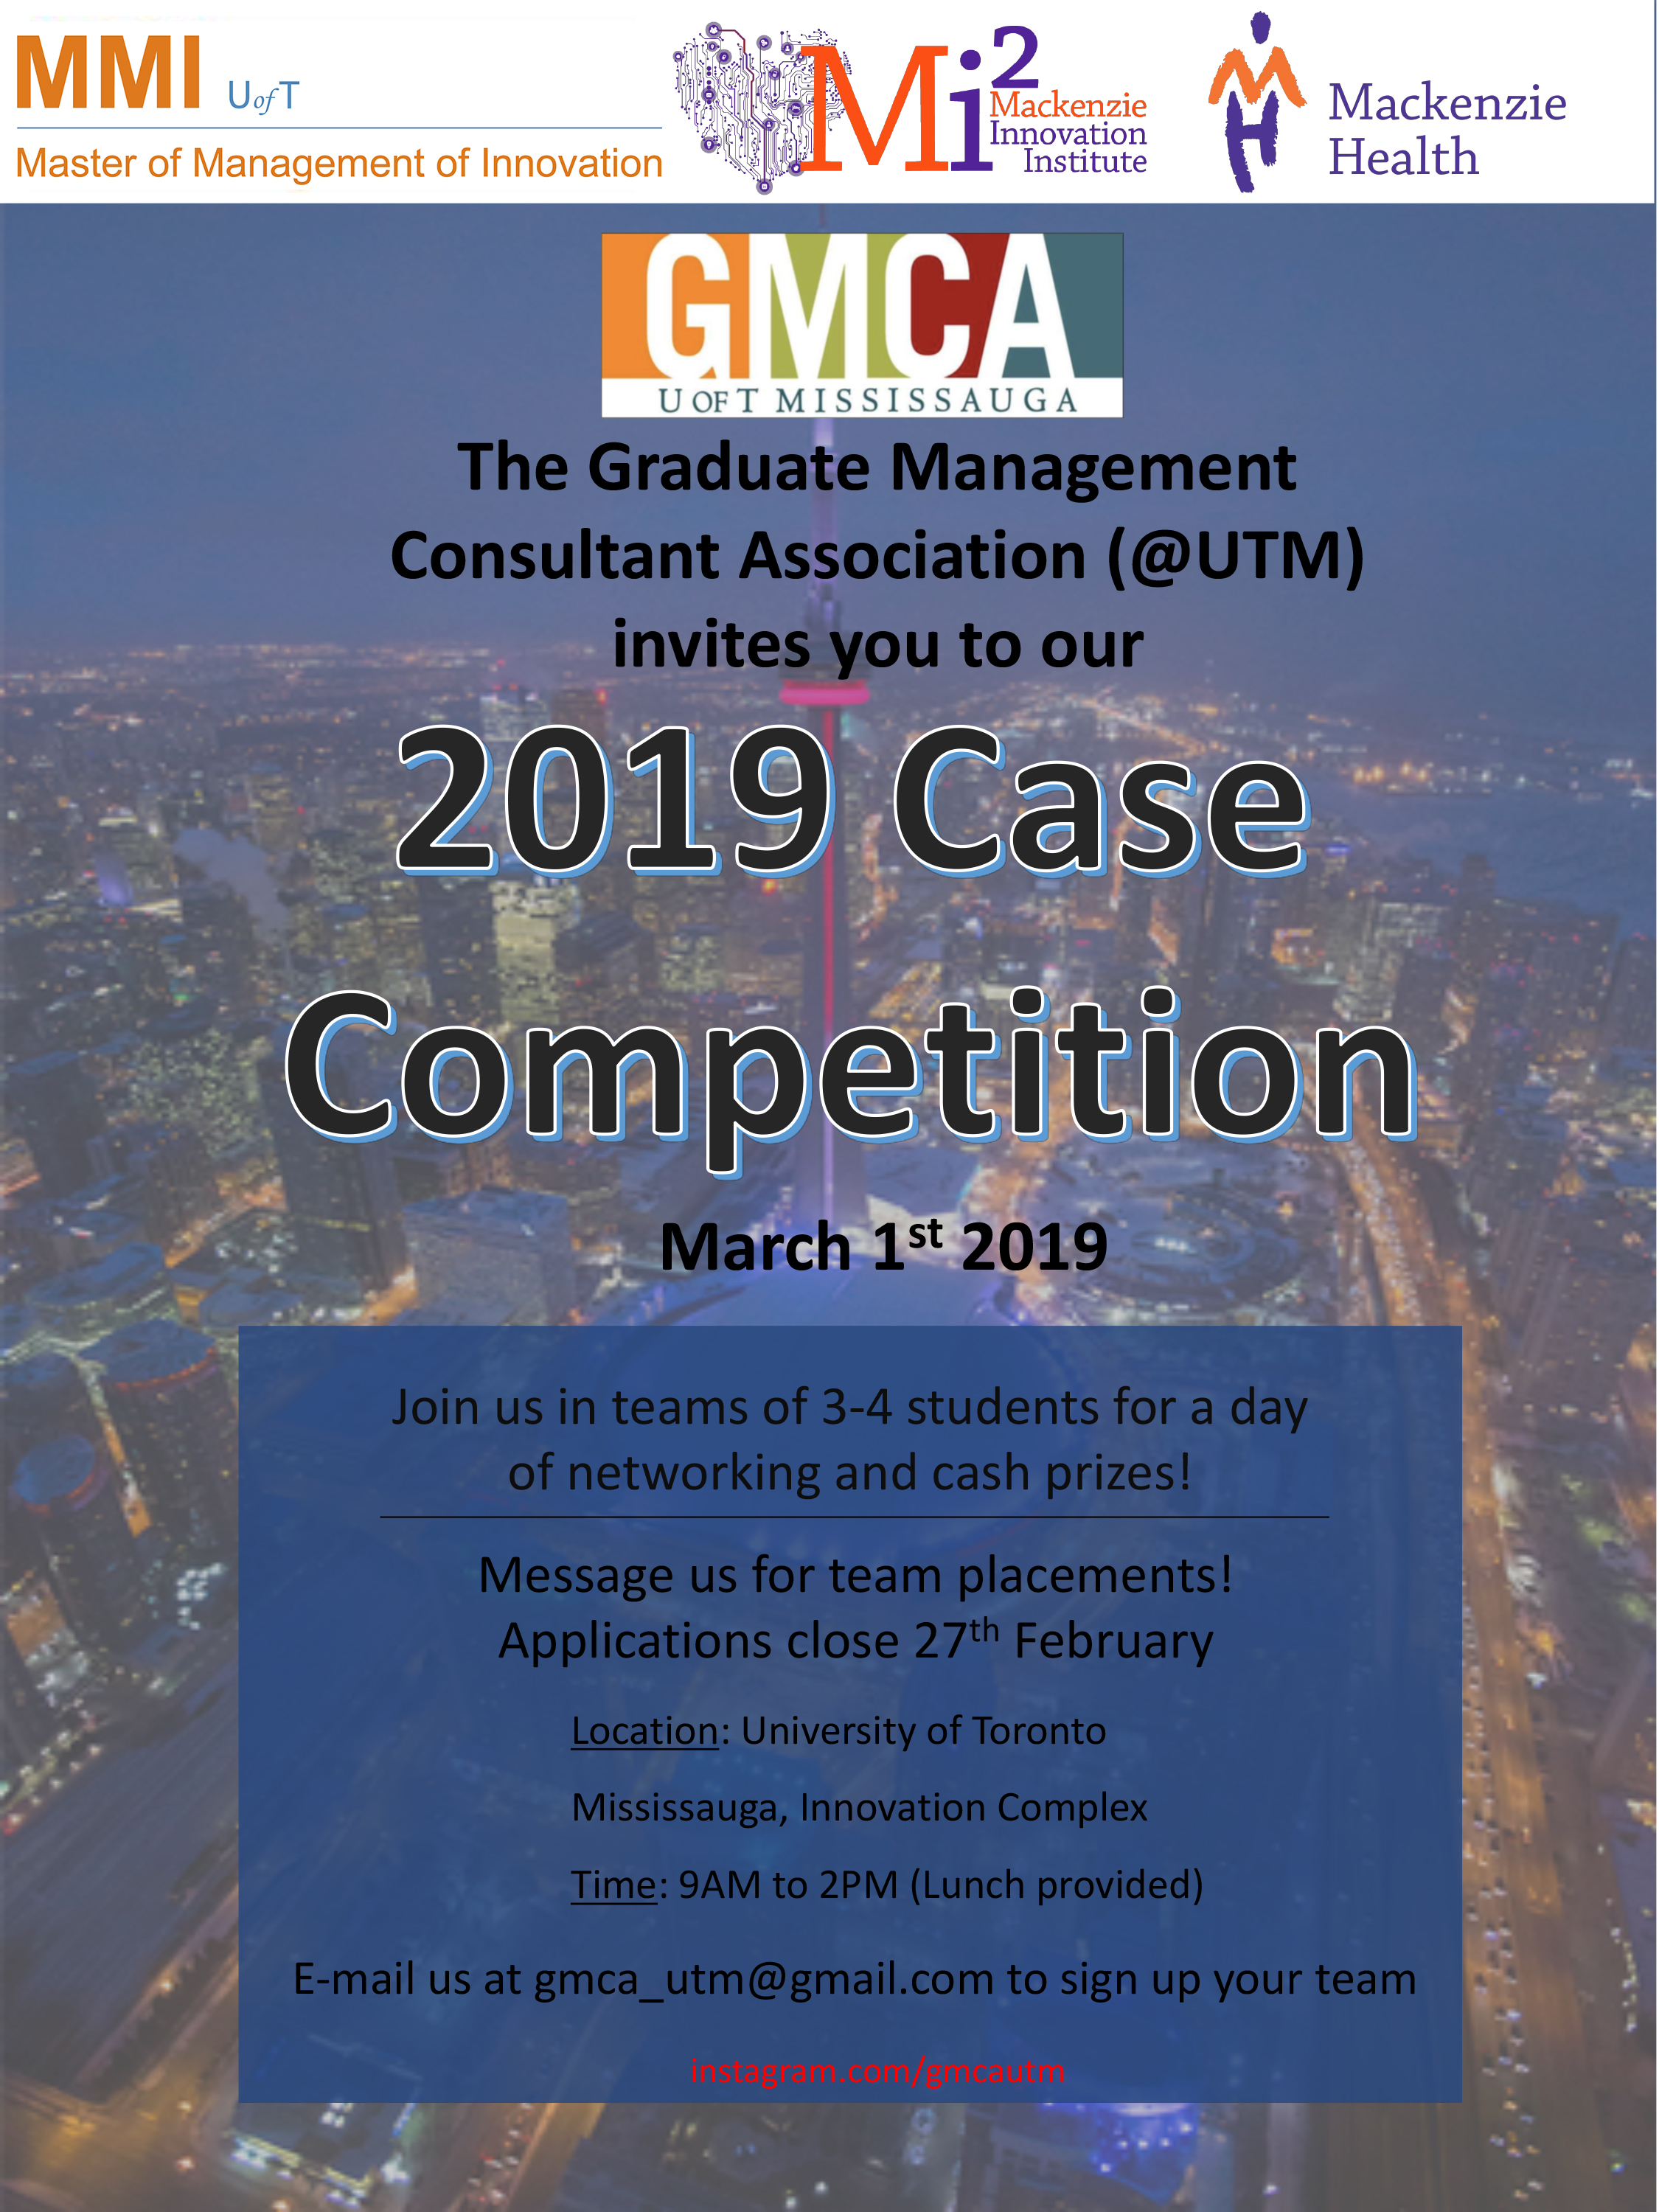 GMCA Case Competition